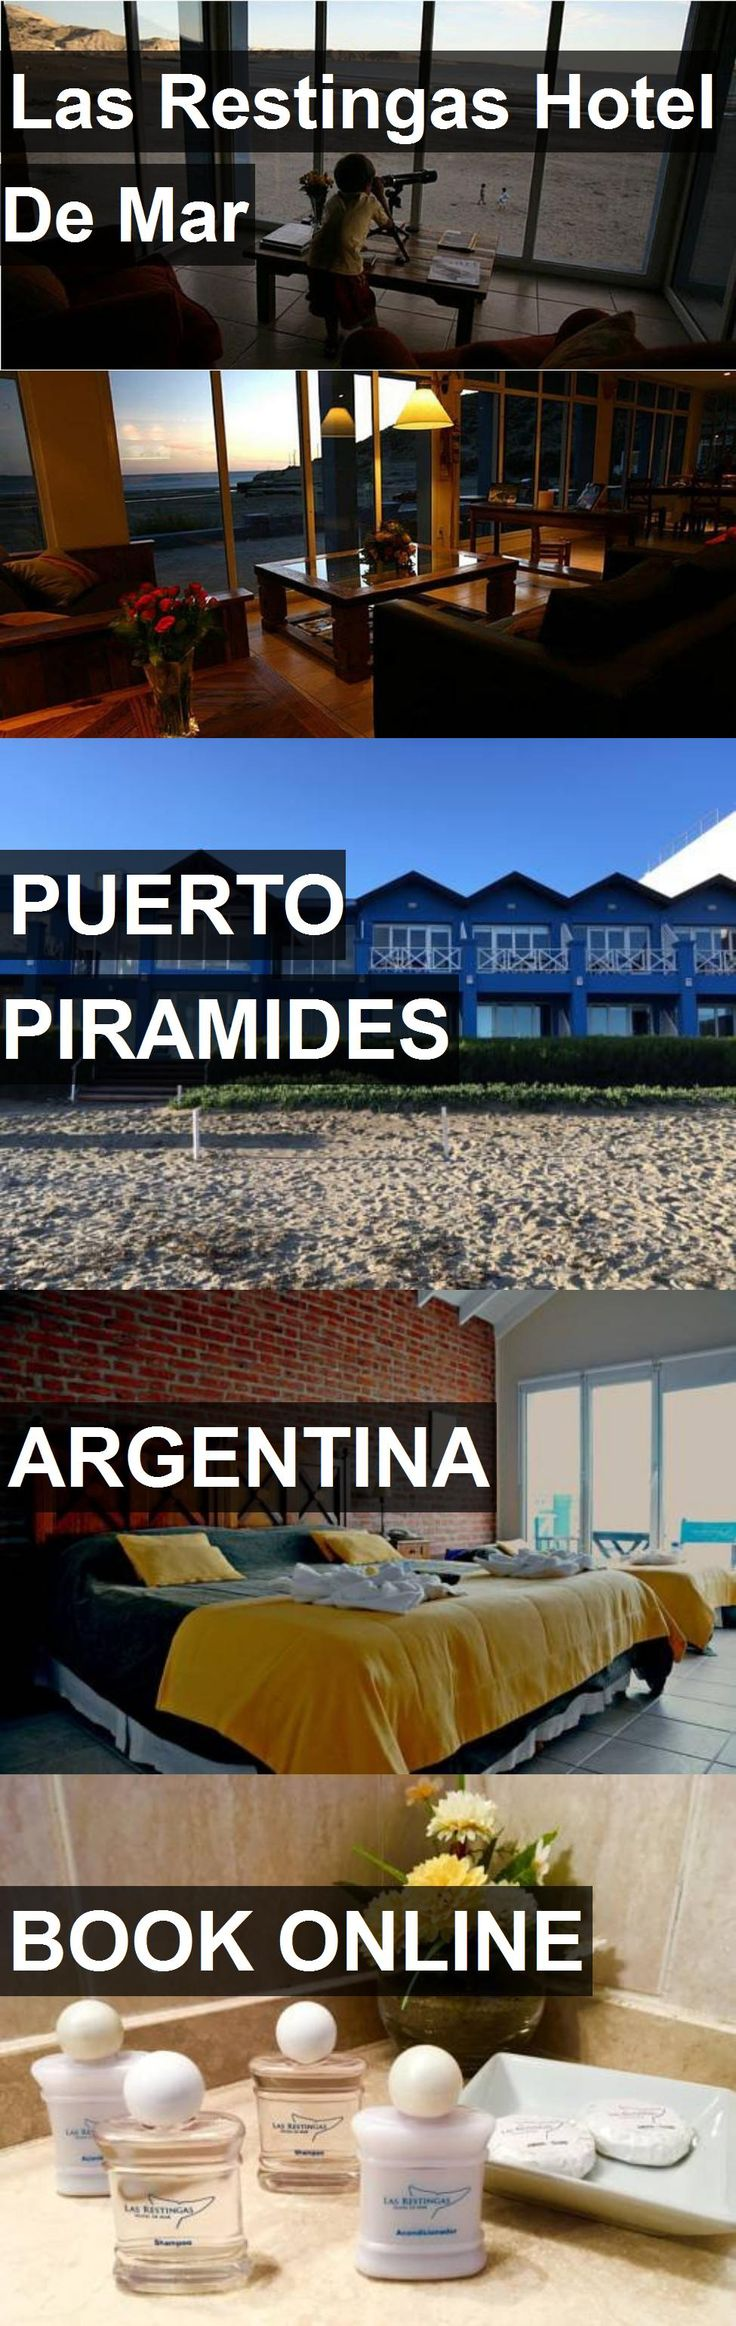 Hotel Las Restingas Hotel De Mar in Puerto Piramides, Argentina. For more information, photos, reviews and best prices please follow the link. #Argentina #PuertoPiramides #hotel #travel #vacation